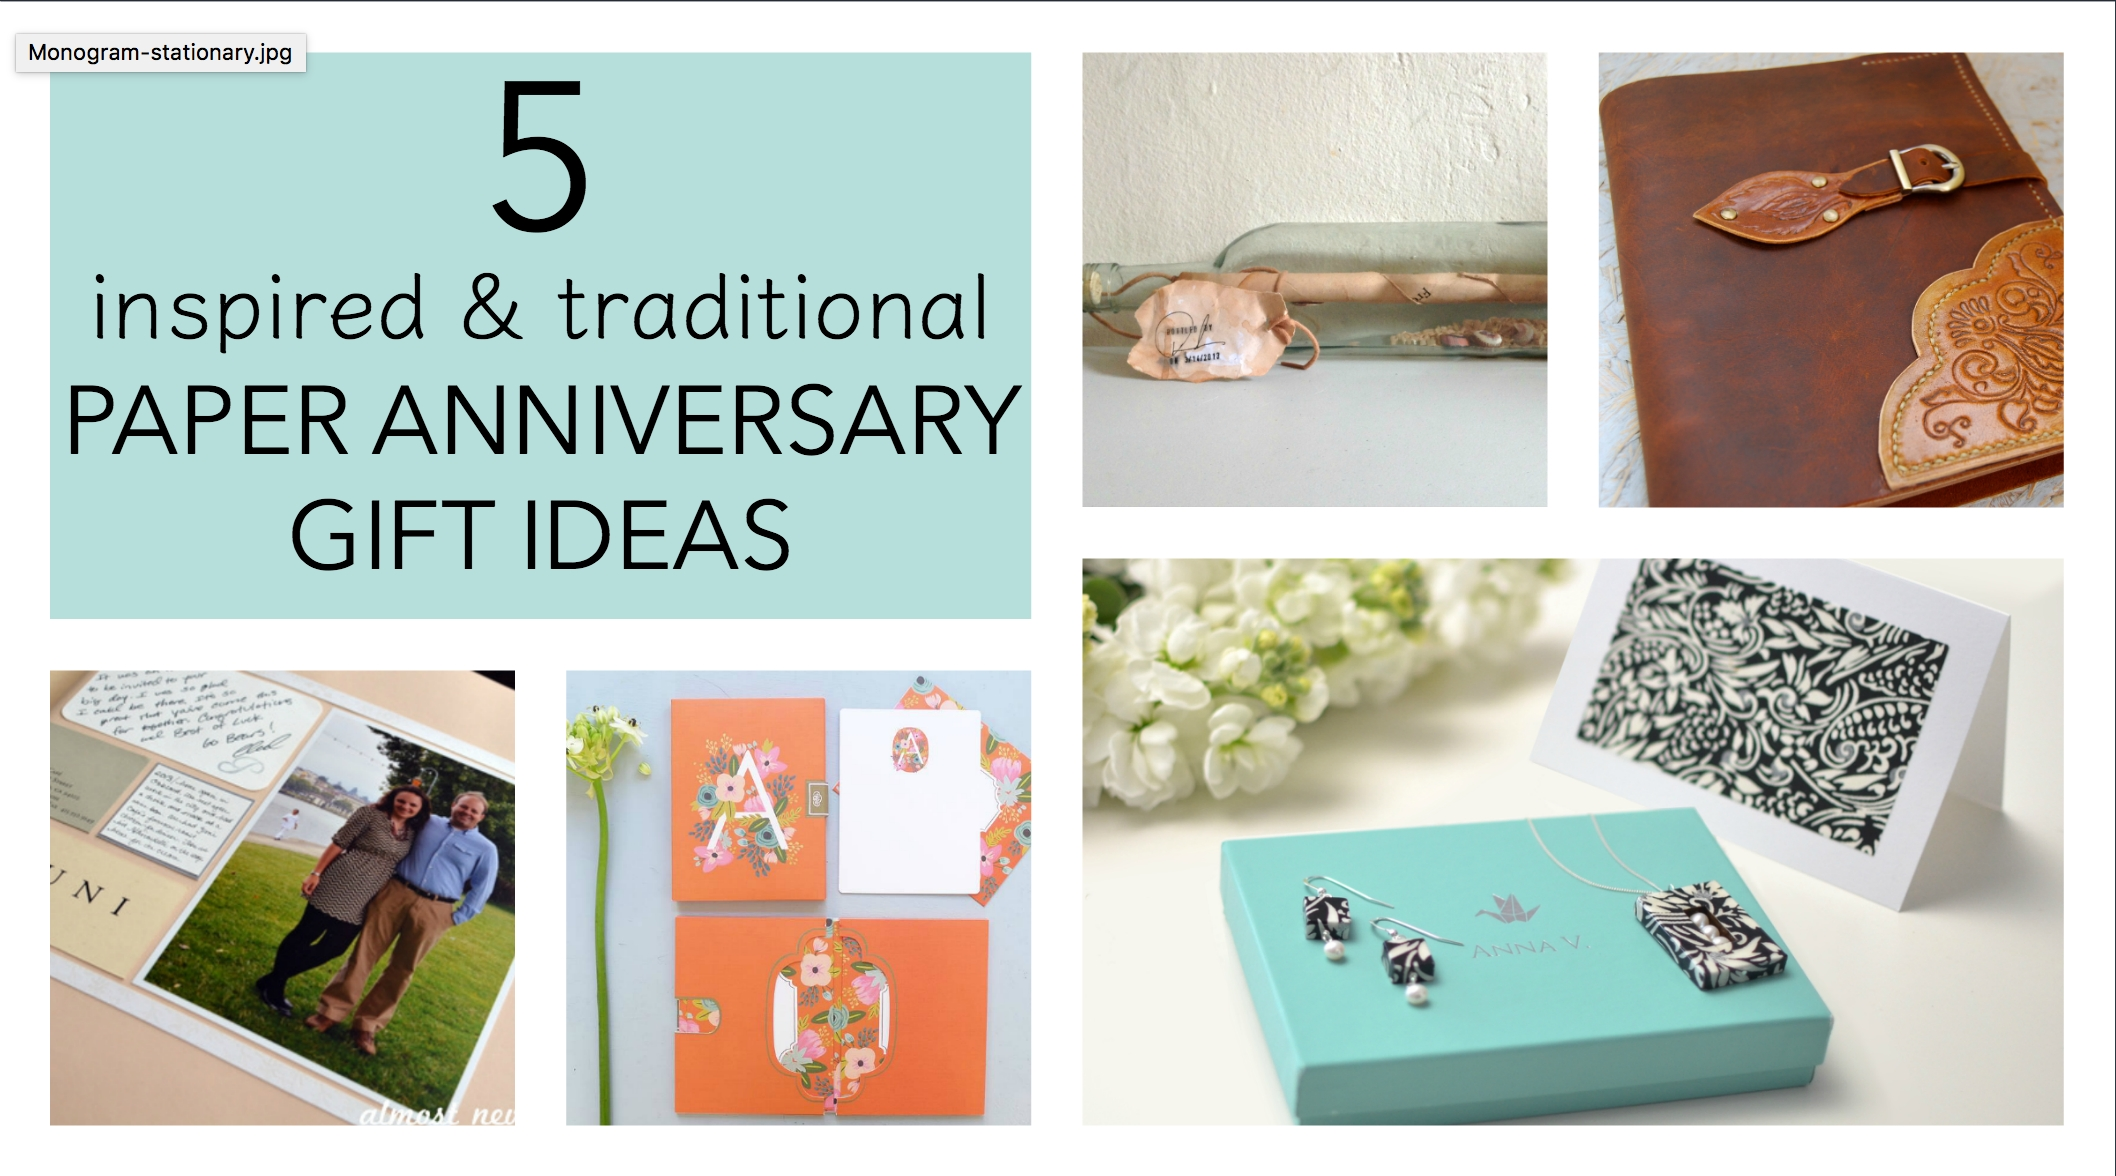 10 Fashionable One Year Anniversary Gift Ideas 5 traditional paper anniversary gift ideas for her paper 3